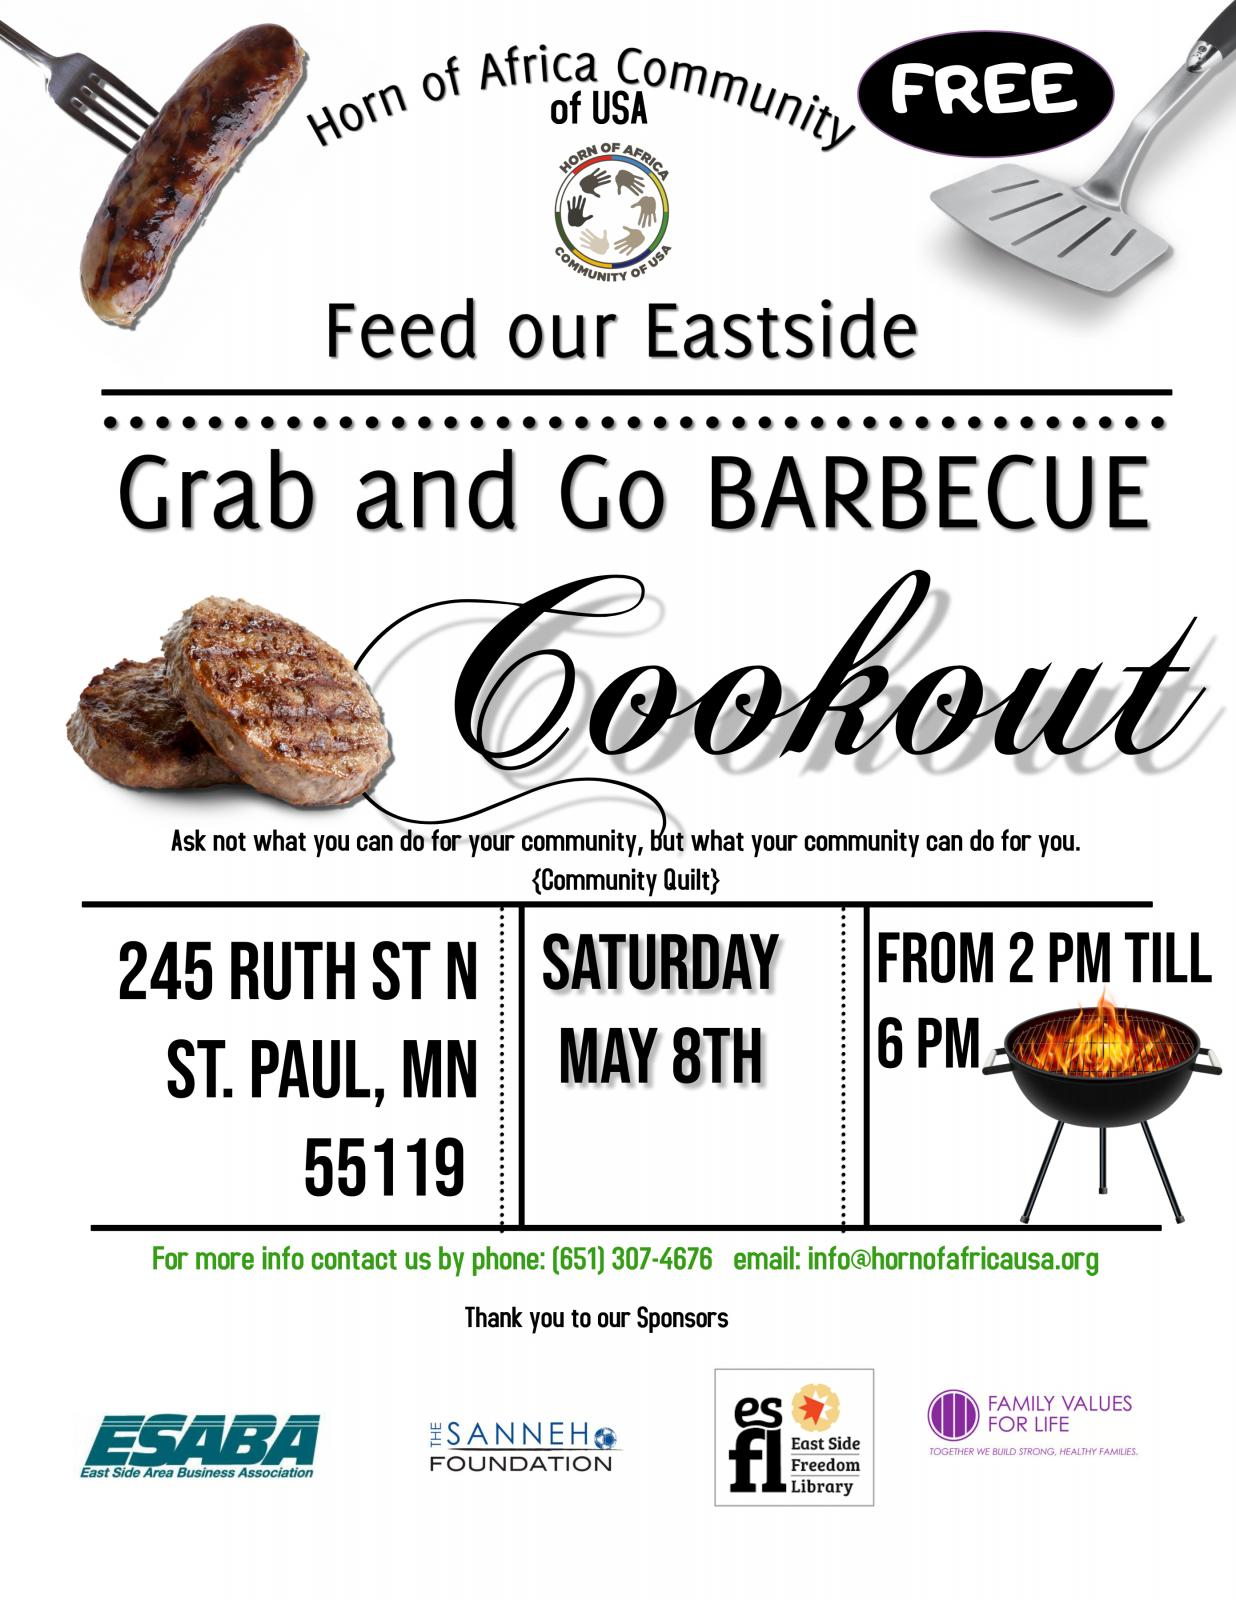 Event Promo Photo For Feed our Eastside Grab and Go Barbecue Cookout